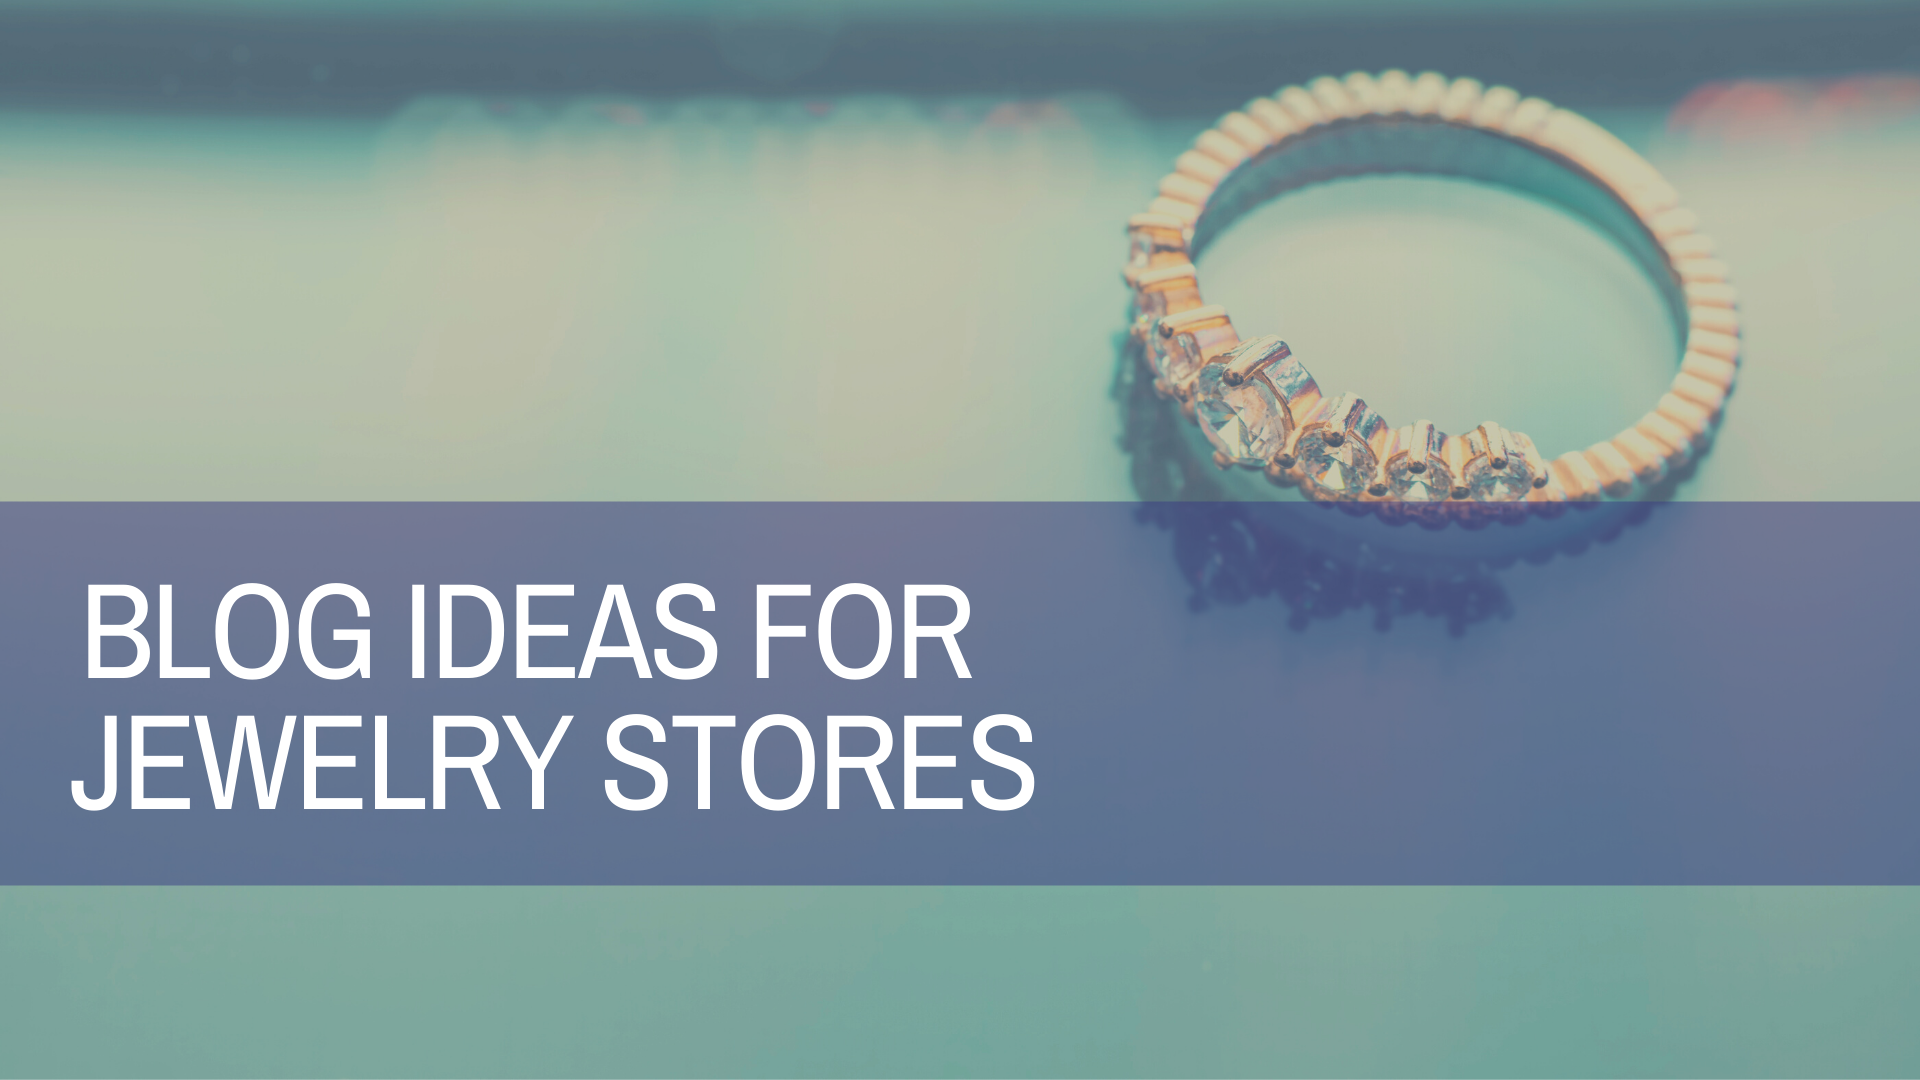 Blog Ideas For Jewelry Stores | Amplihigher Copywriting Agency